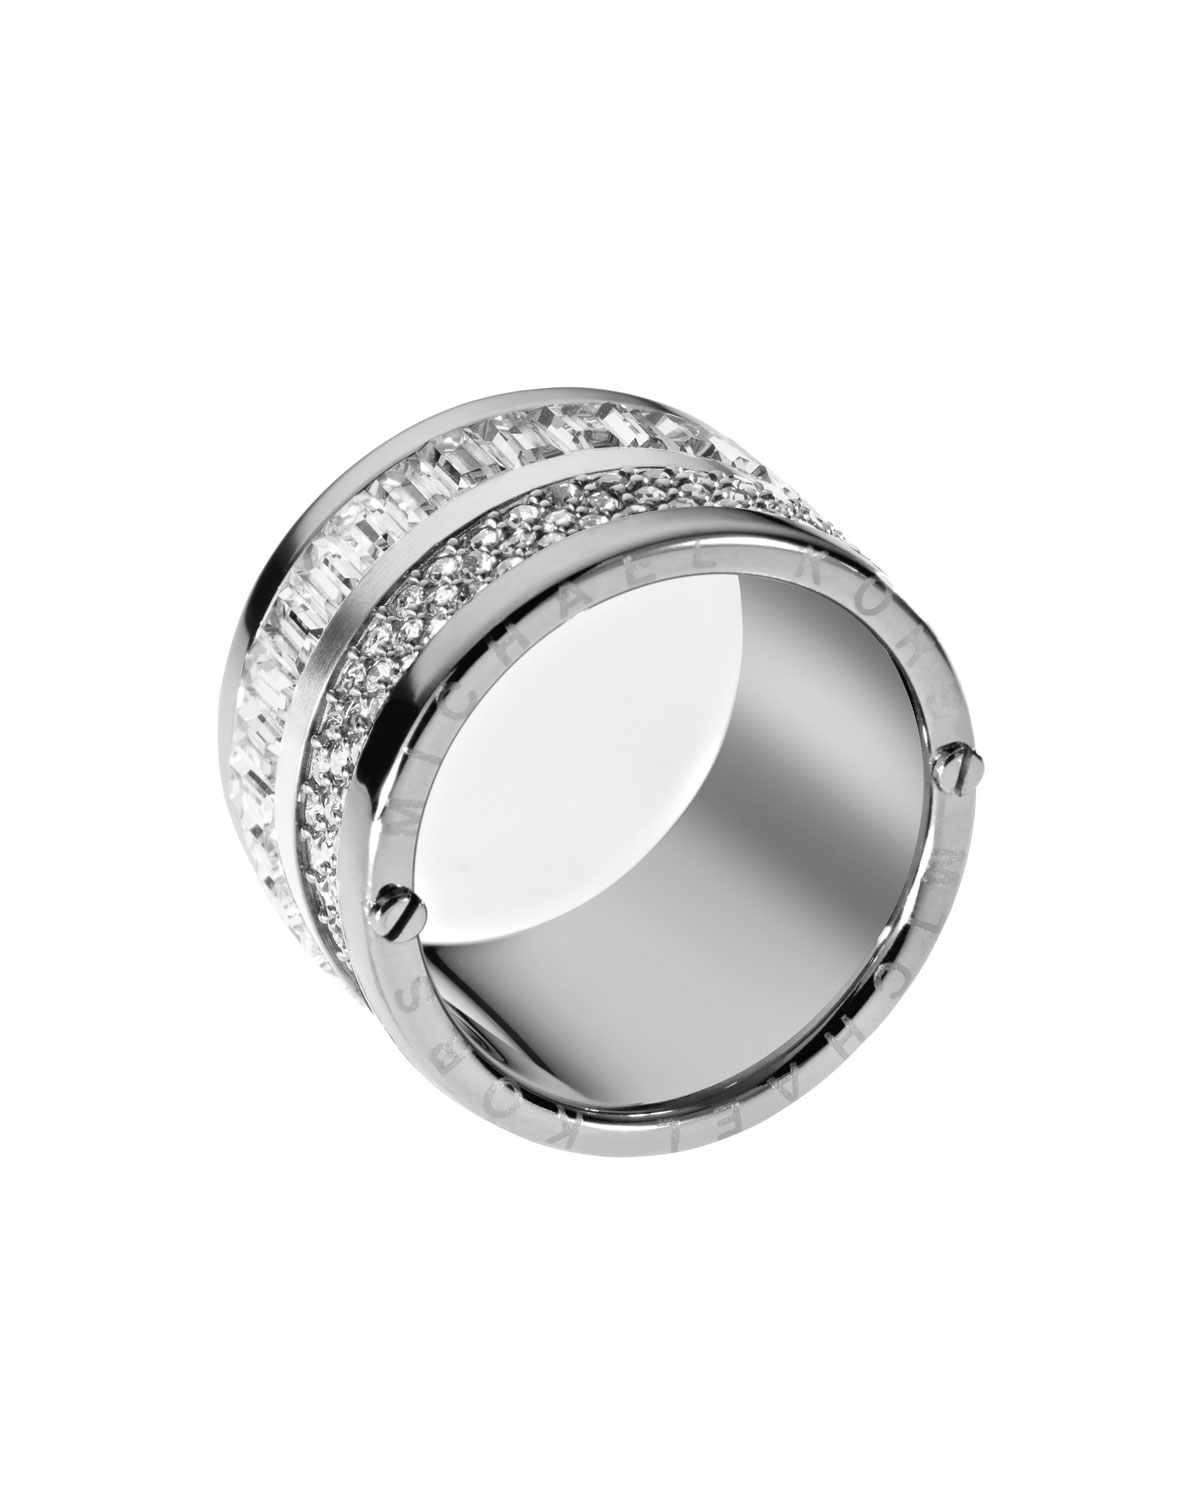 michael kors pave barrel ring in silver lyst